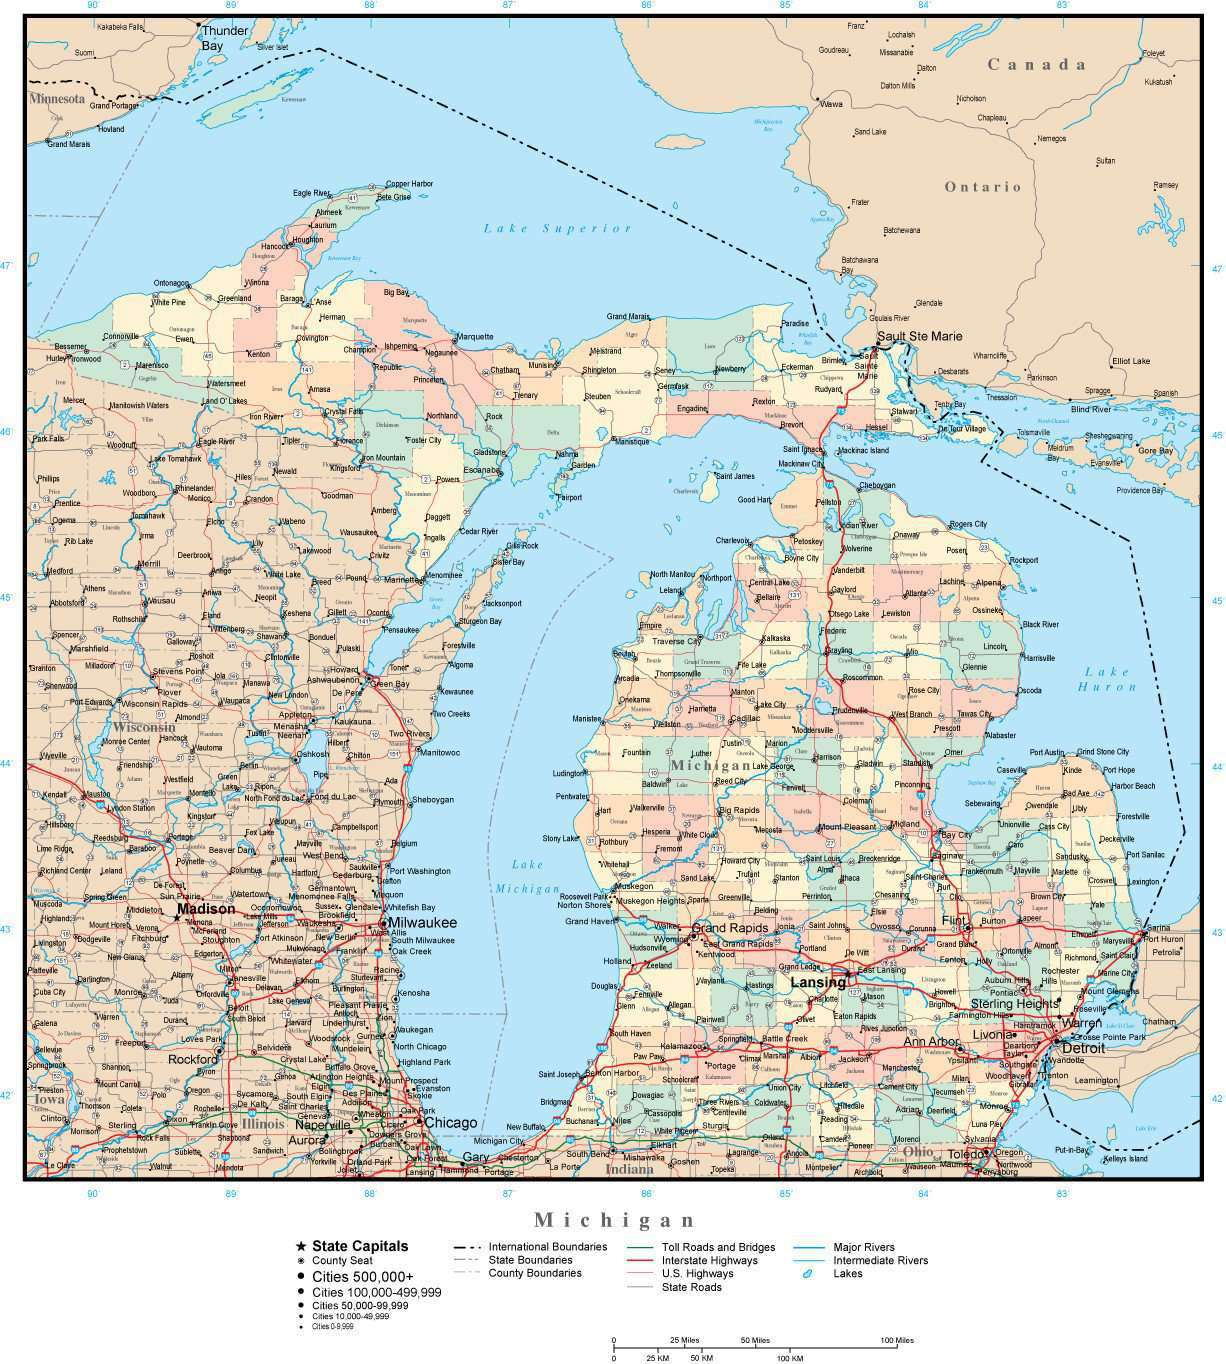 Michigan Map With Cities And Lakes.Michigan Adobe Illustrator Map With Counties Cities County Seats